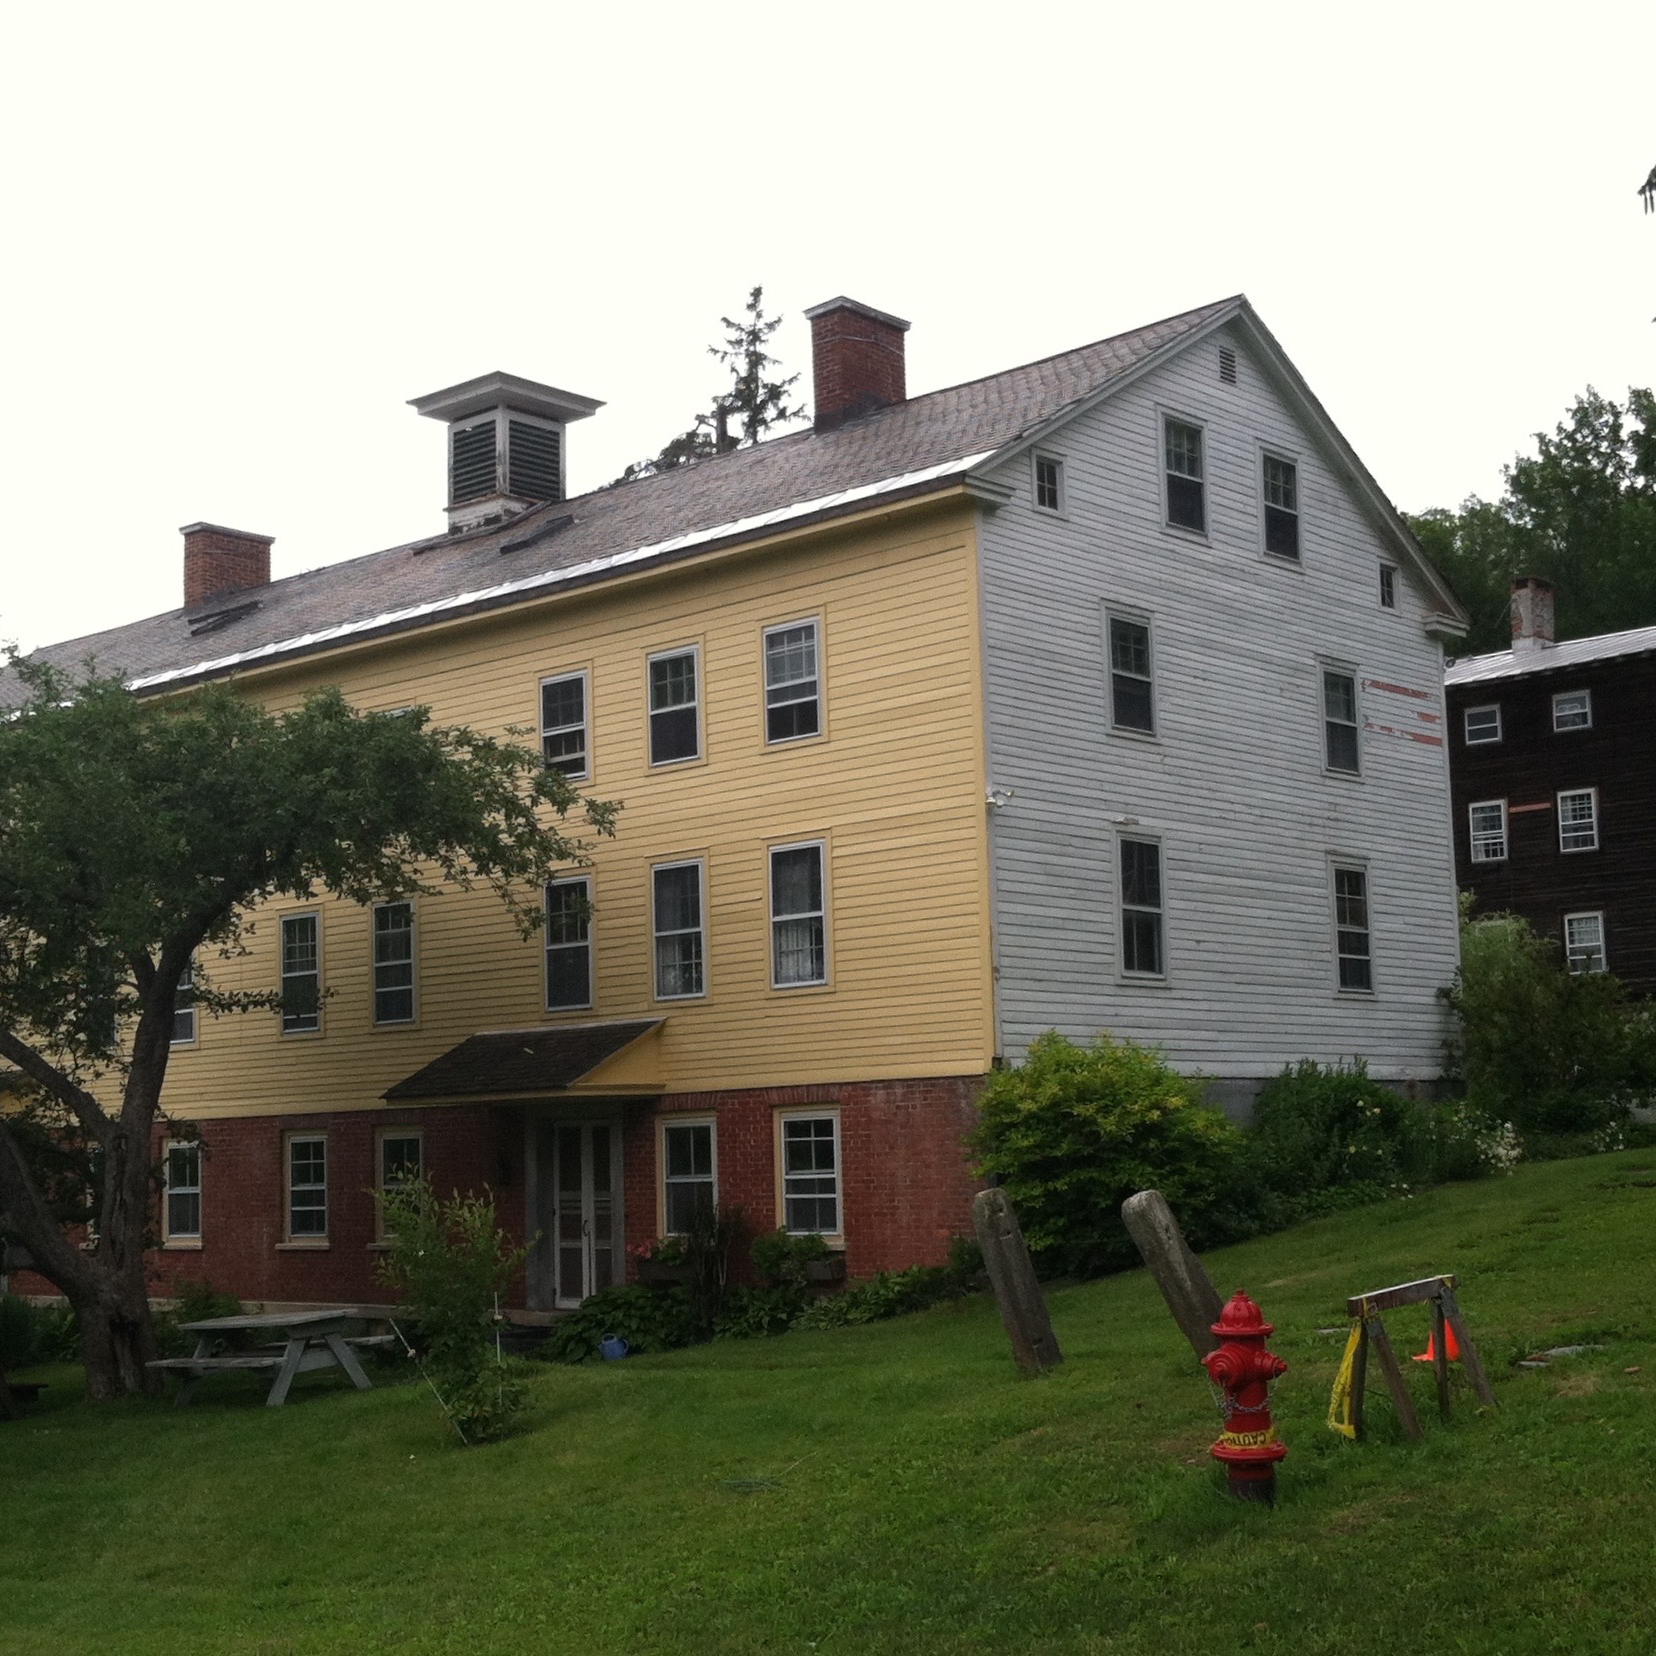 The Razzaq ('provider') building which contains the library, dining hall, and guest rooms. — N.M-Y. '15